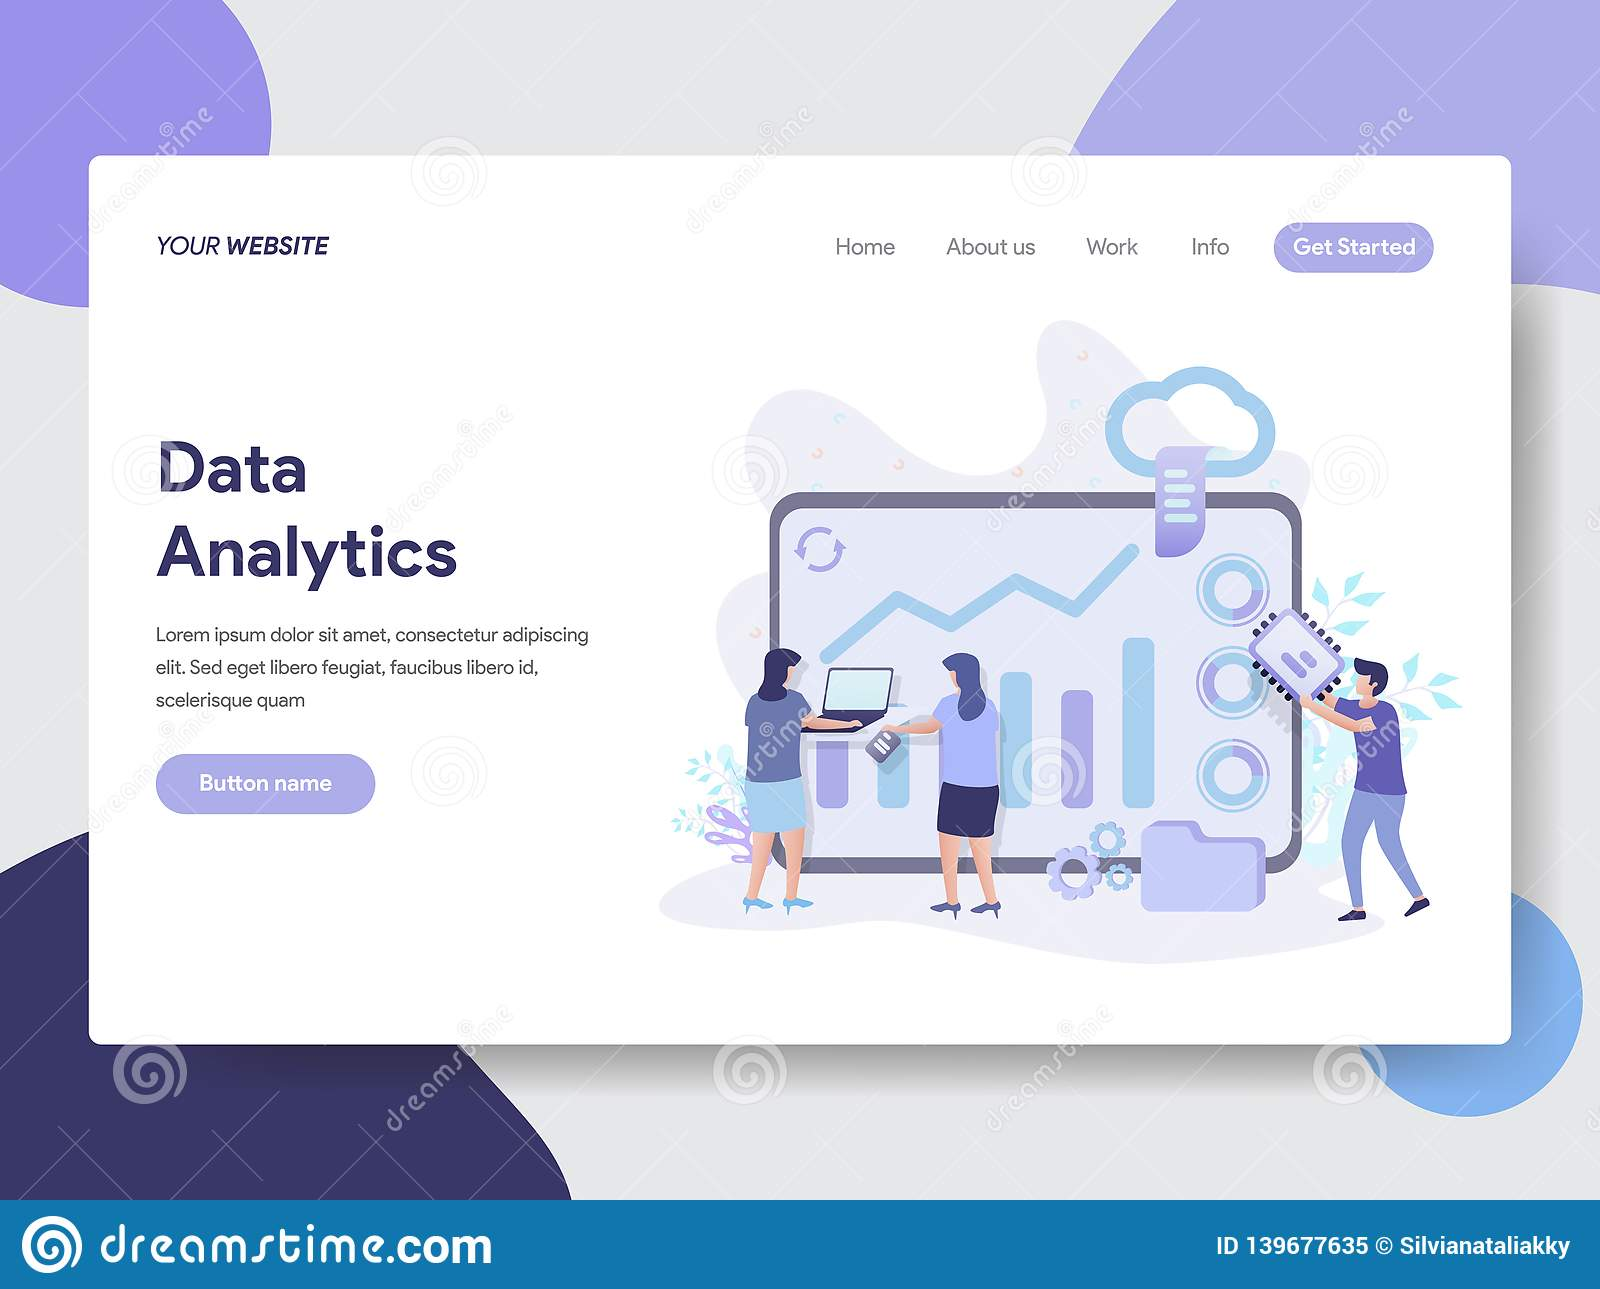 Landing page template of Data Analytics Illustration Concept. Modern flat design concept of web page design for website and mobile